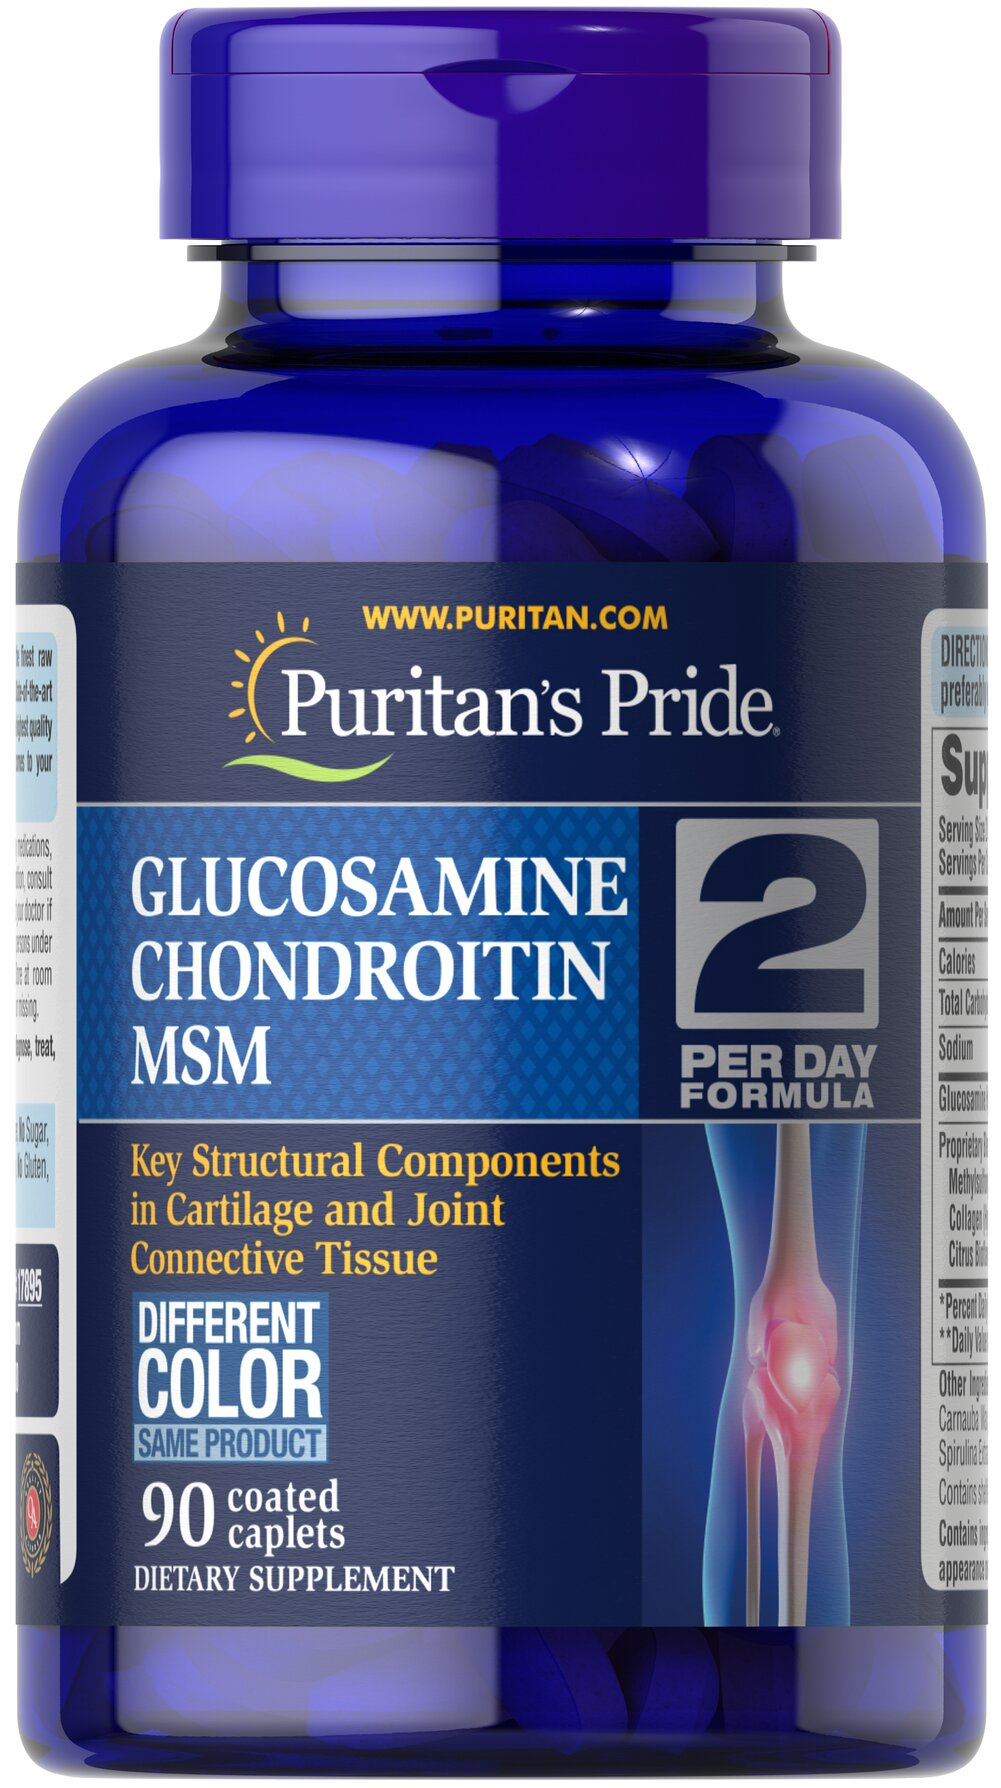 Triple Strength Glucosamine, Chondroitin & MSM Joint Soother® <p></p>Contains Glucosamine, Chondroitin, and MSM, which work synergistically to enhance each other's benefits in the body** Triple Strength Glucosamine, Chondroitin and MSM is the most powerful joint soother yet!** Just two caplets per day will give you triple strength protection with 1500 mg of Glucosamine, and 1200 mg of our joint nourishing proprietary blend.** If you are looking to maintain your joints and ca